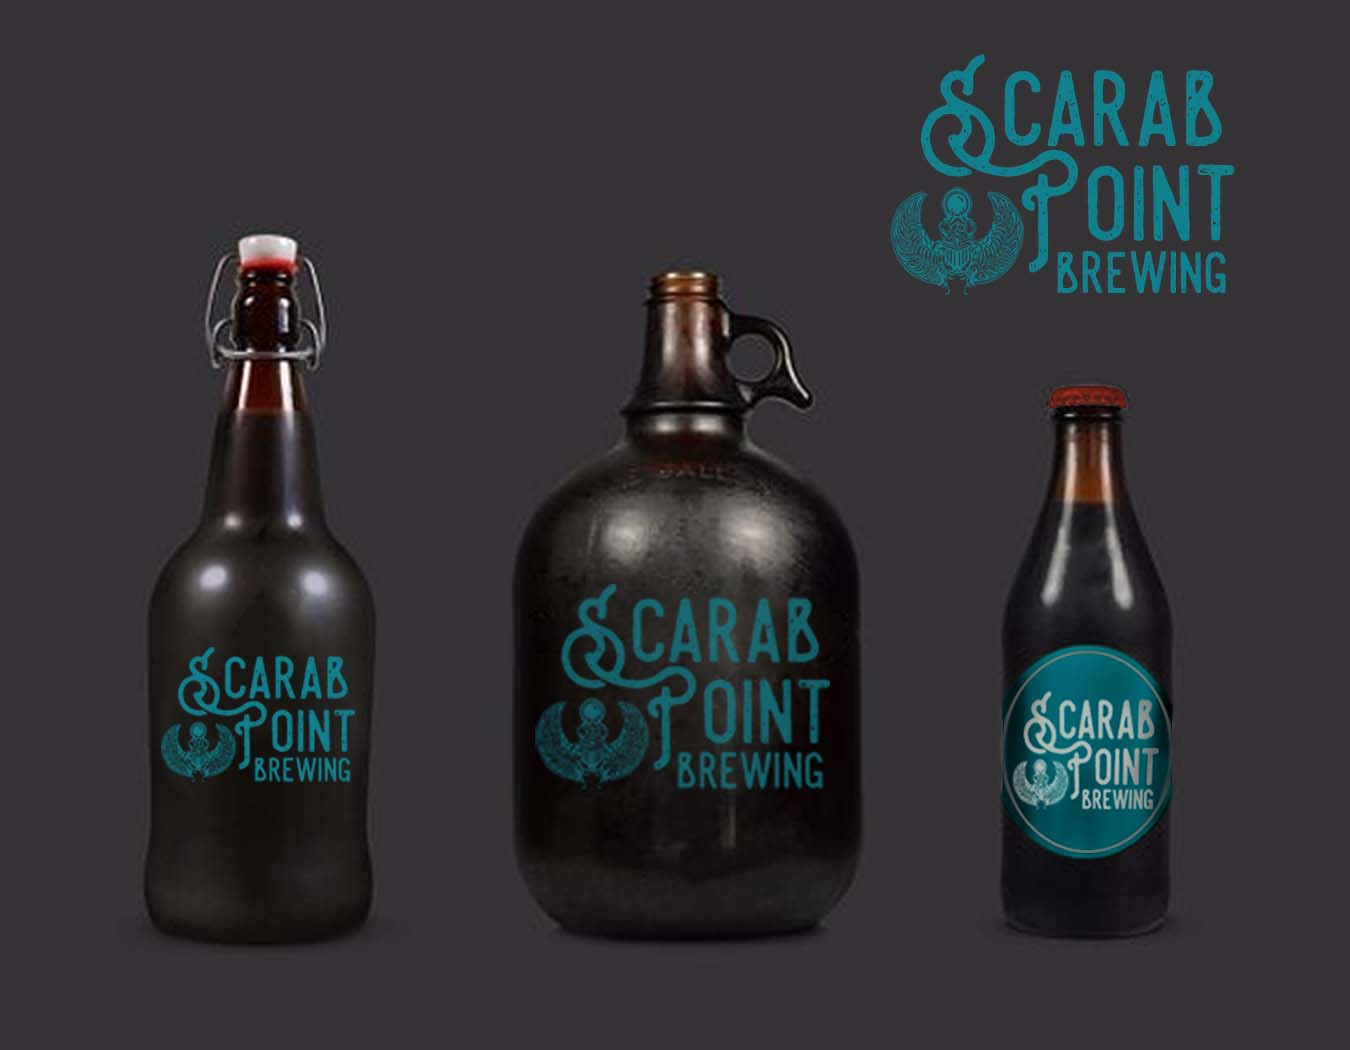 Scarab Point Brewing Packaging Design